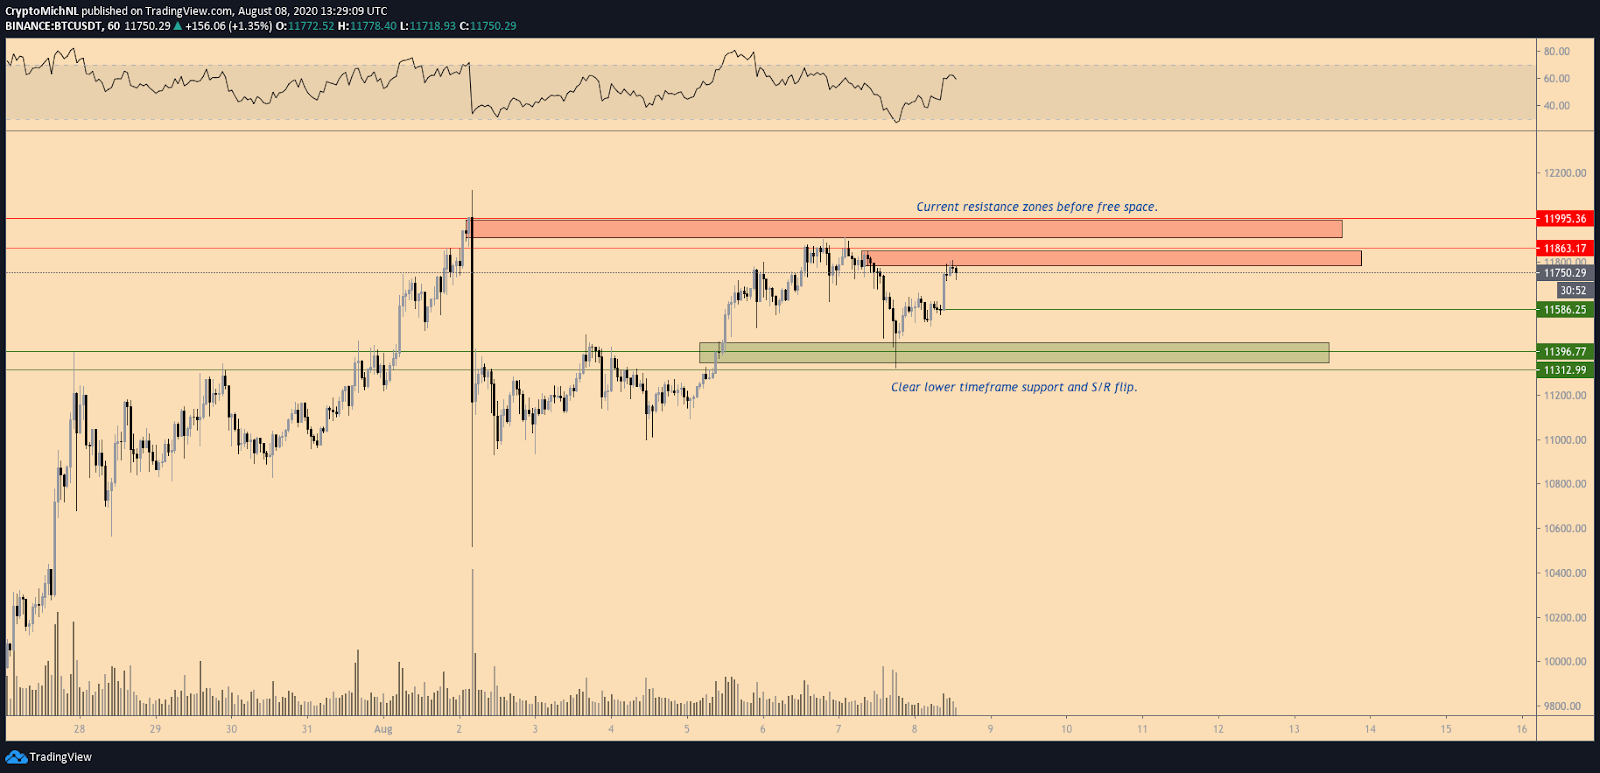 2-hour chart for the BTC / USD pair